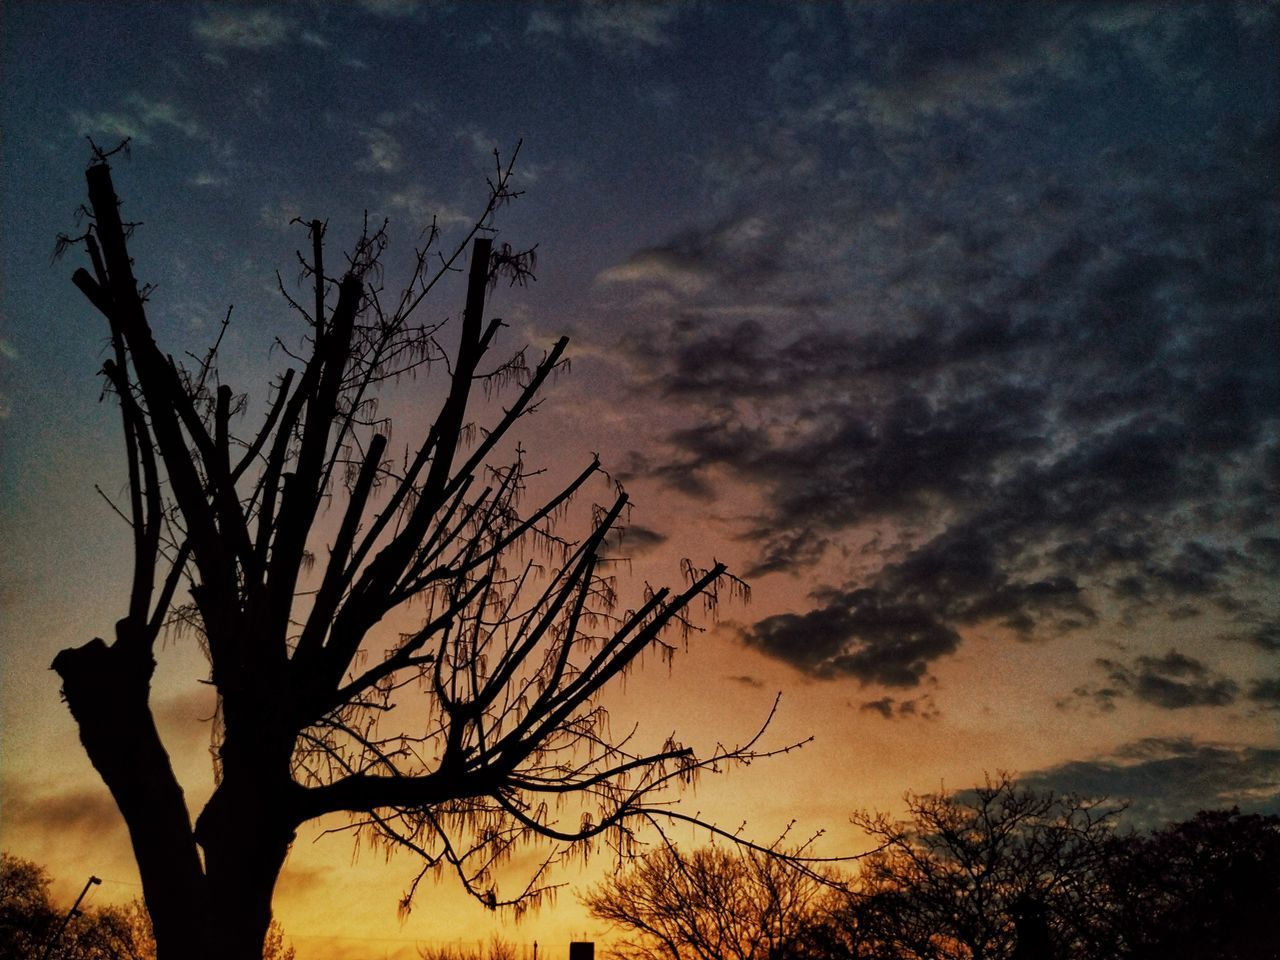 SILHOUETTE BARE TREE AGAINST DRAMATIC SKY